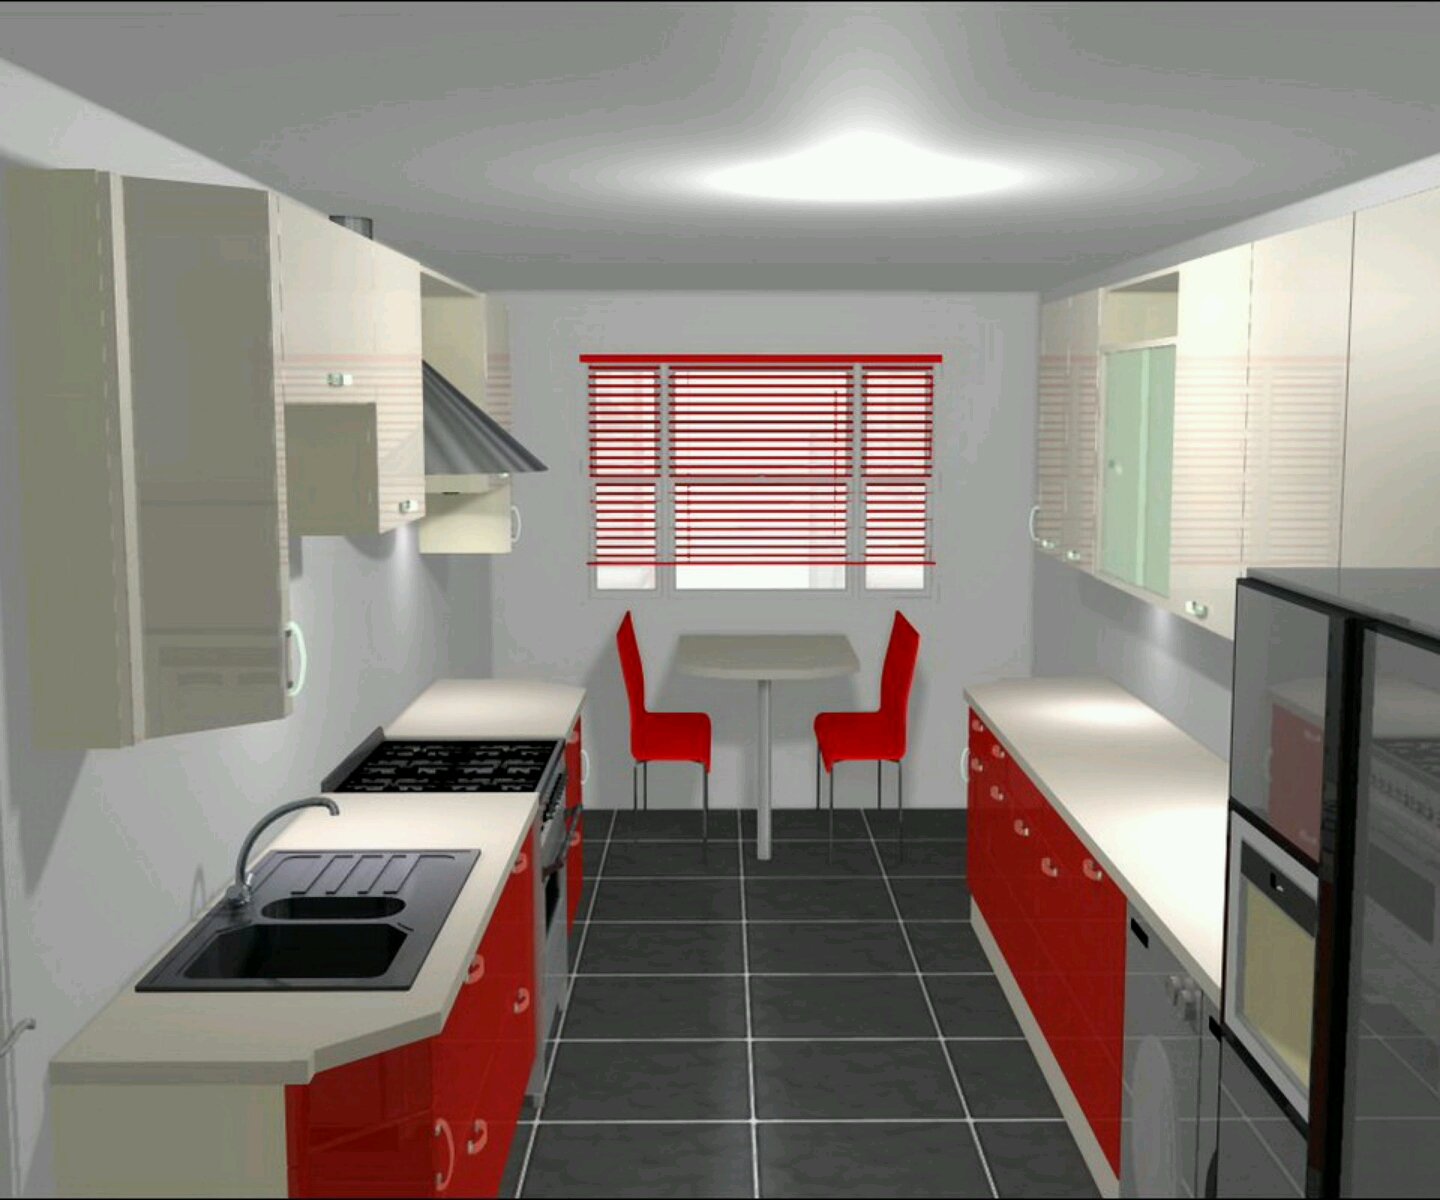 New Home Designs Latest Modern Home Kitchen Cabinet: New Home Designs Latest.: Modern Home Kitchen Cabinet